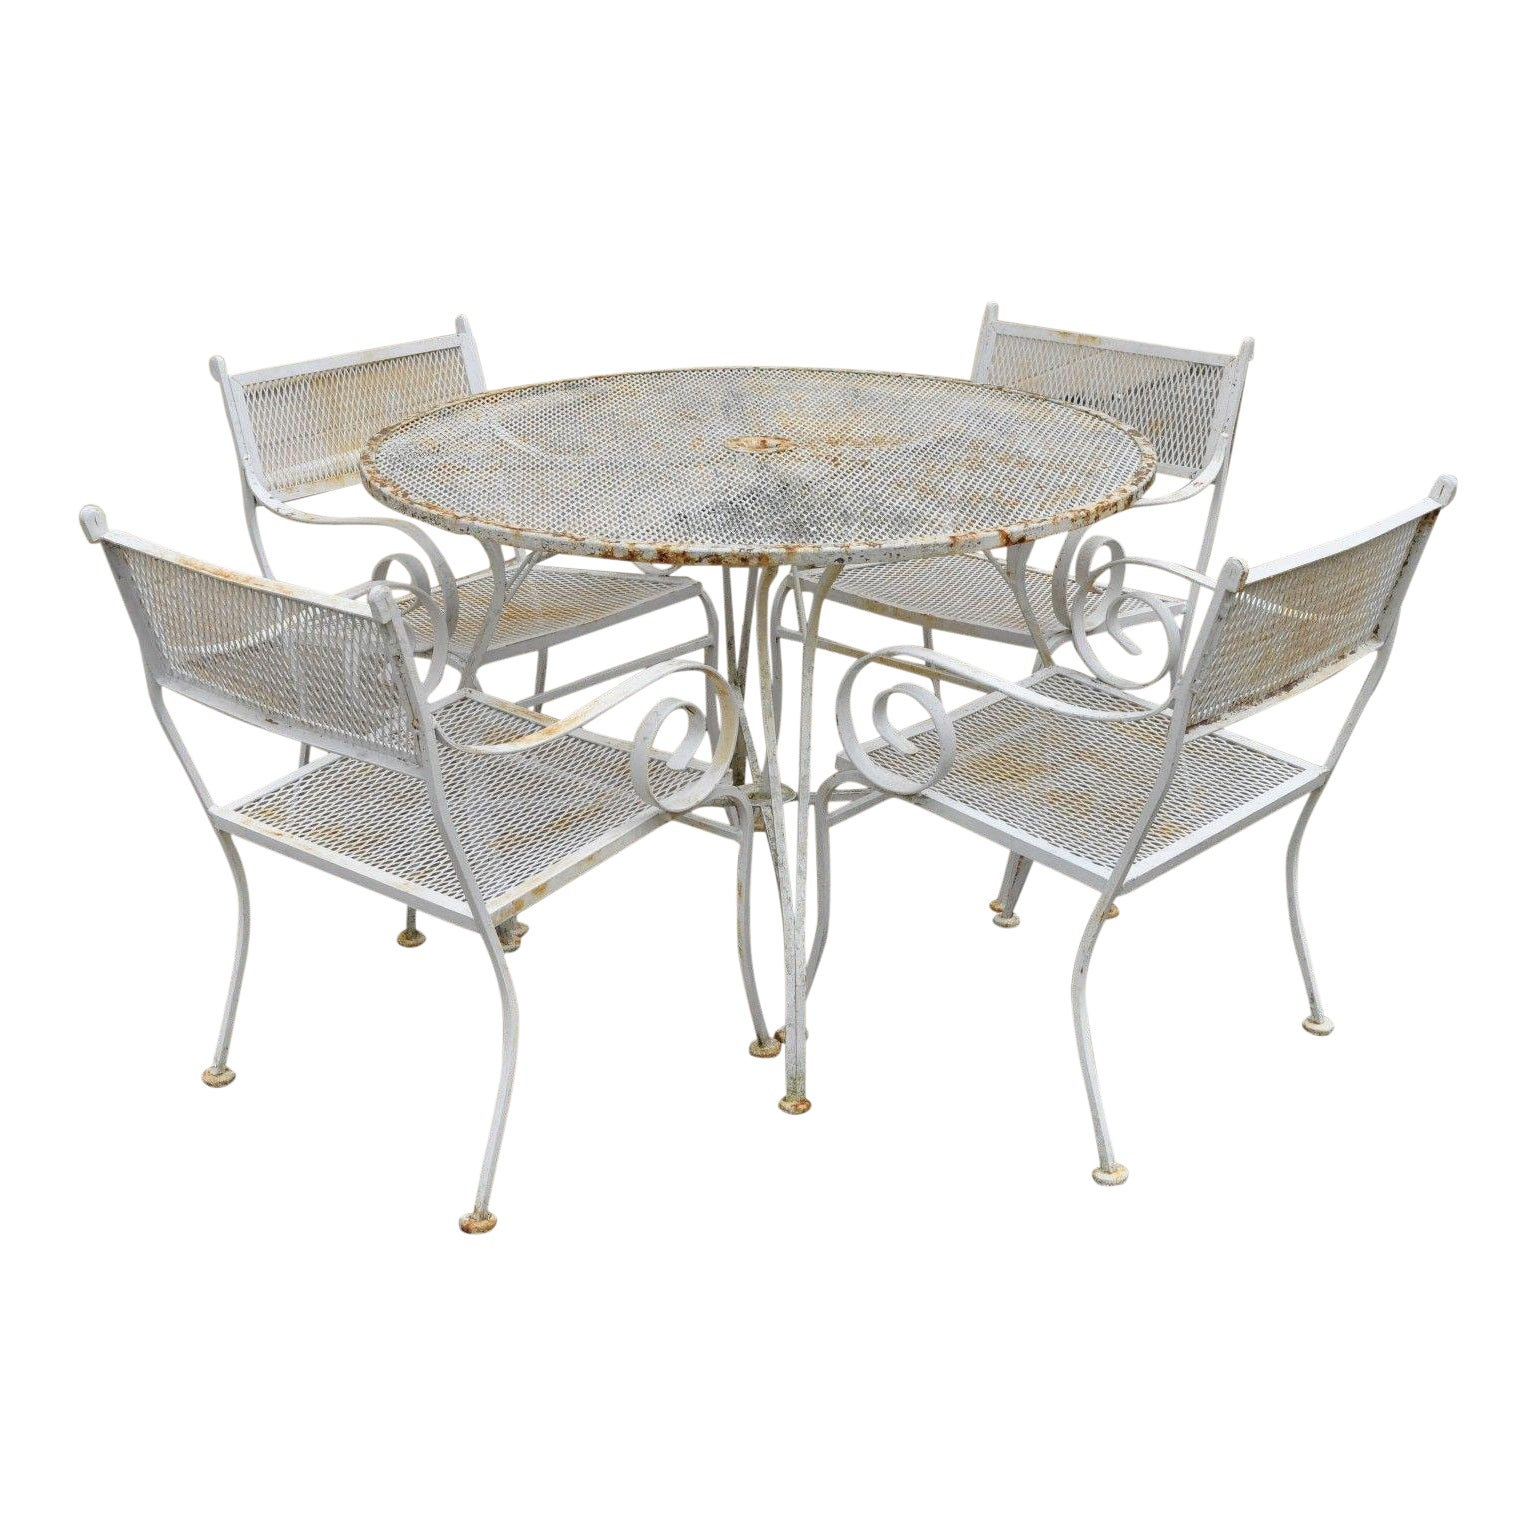 Mid Century Vintage Wrought Iron Metal Scroll Arm Patio Dining Table Chairs Set Of 5 Chairish